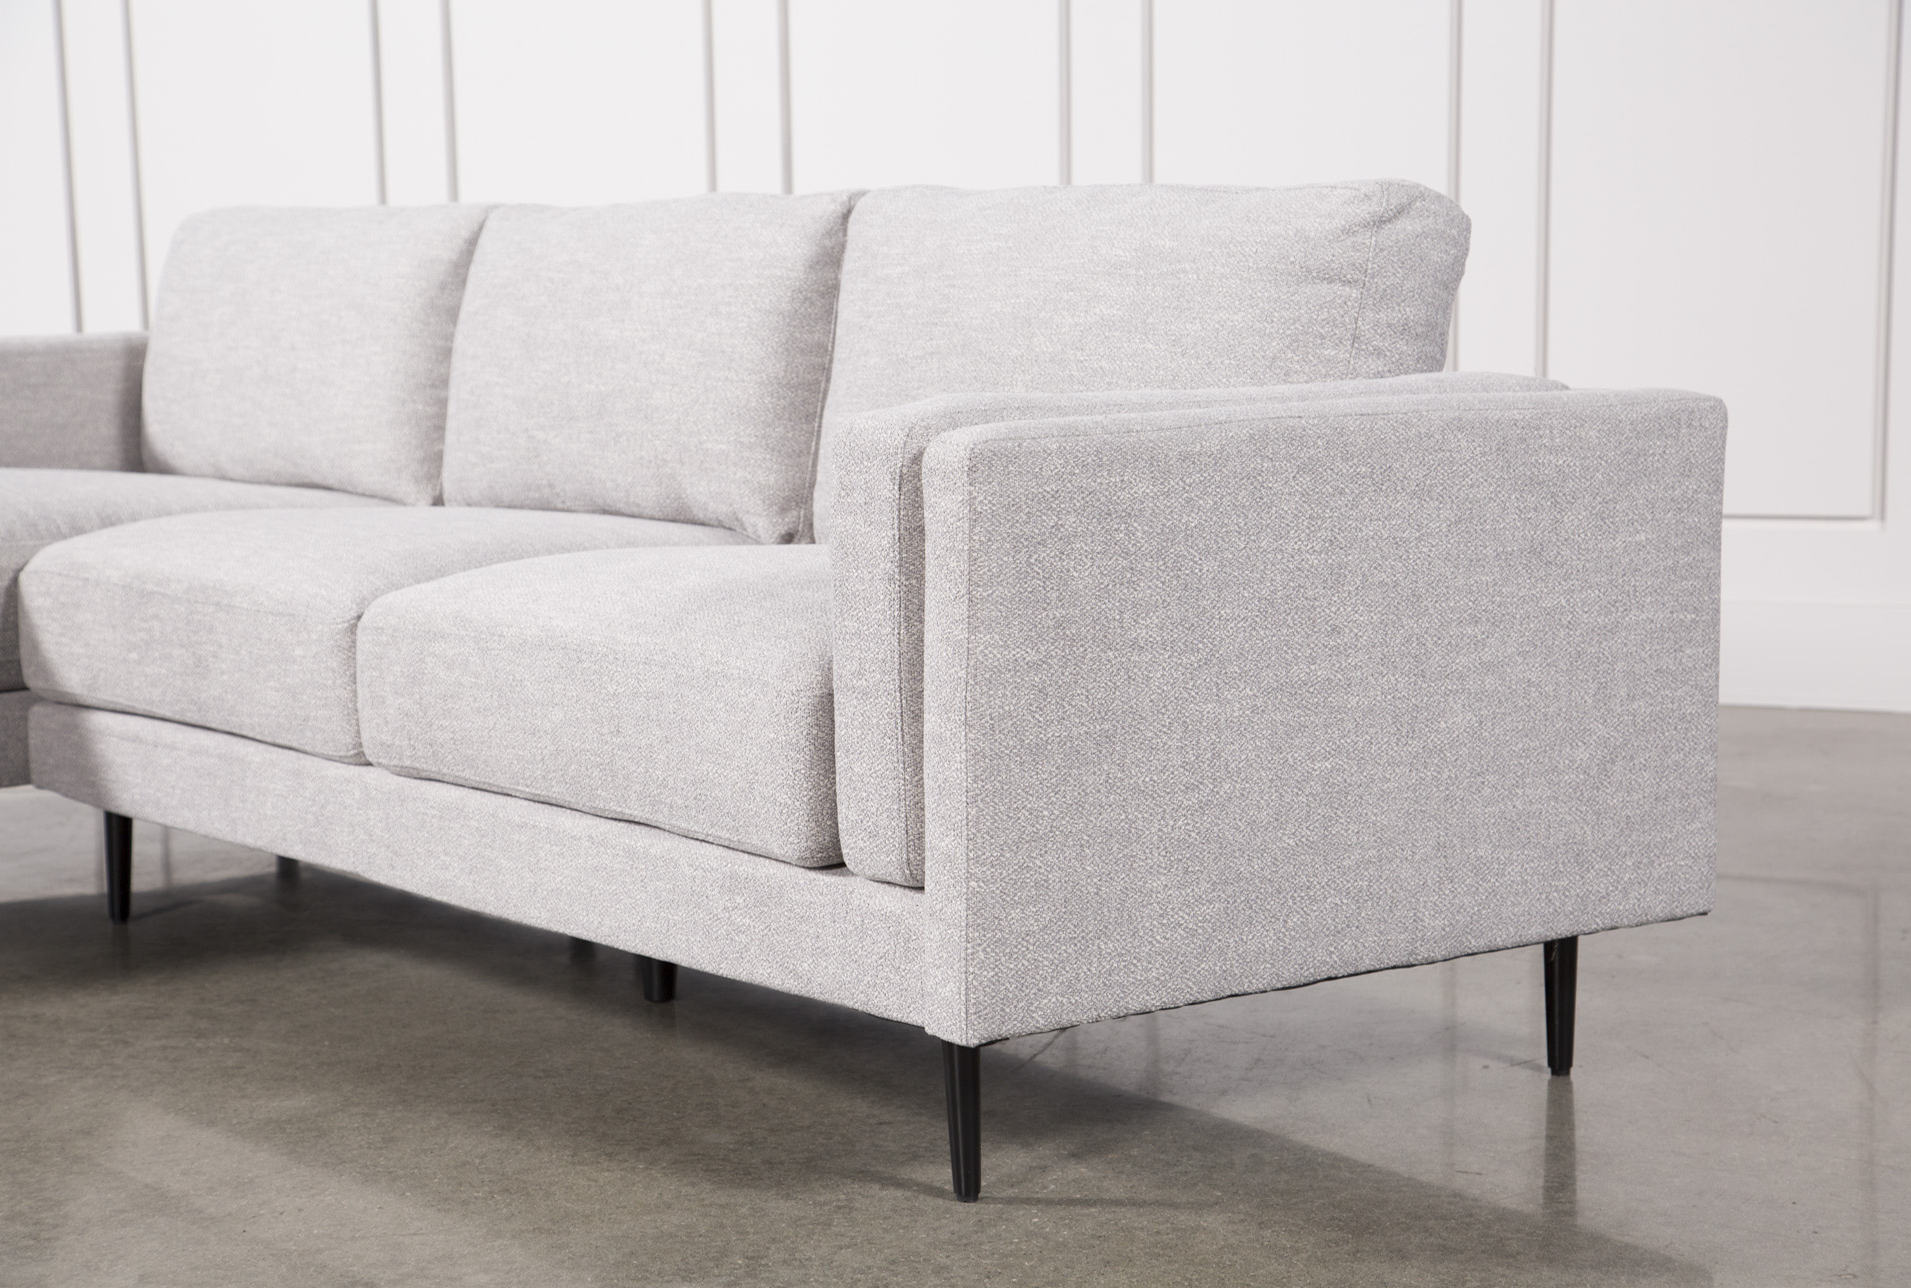 Most Recently Released Aquarius Dark Grey 2 Piece Sectionals With Laf Chaise Intended For Aquarius Light Grey 2 Piece Sectional W/raf Chaise (View 12 of 20)